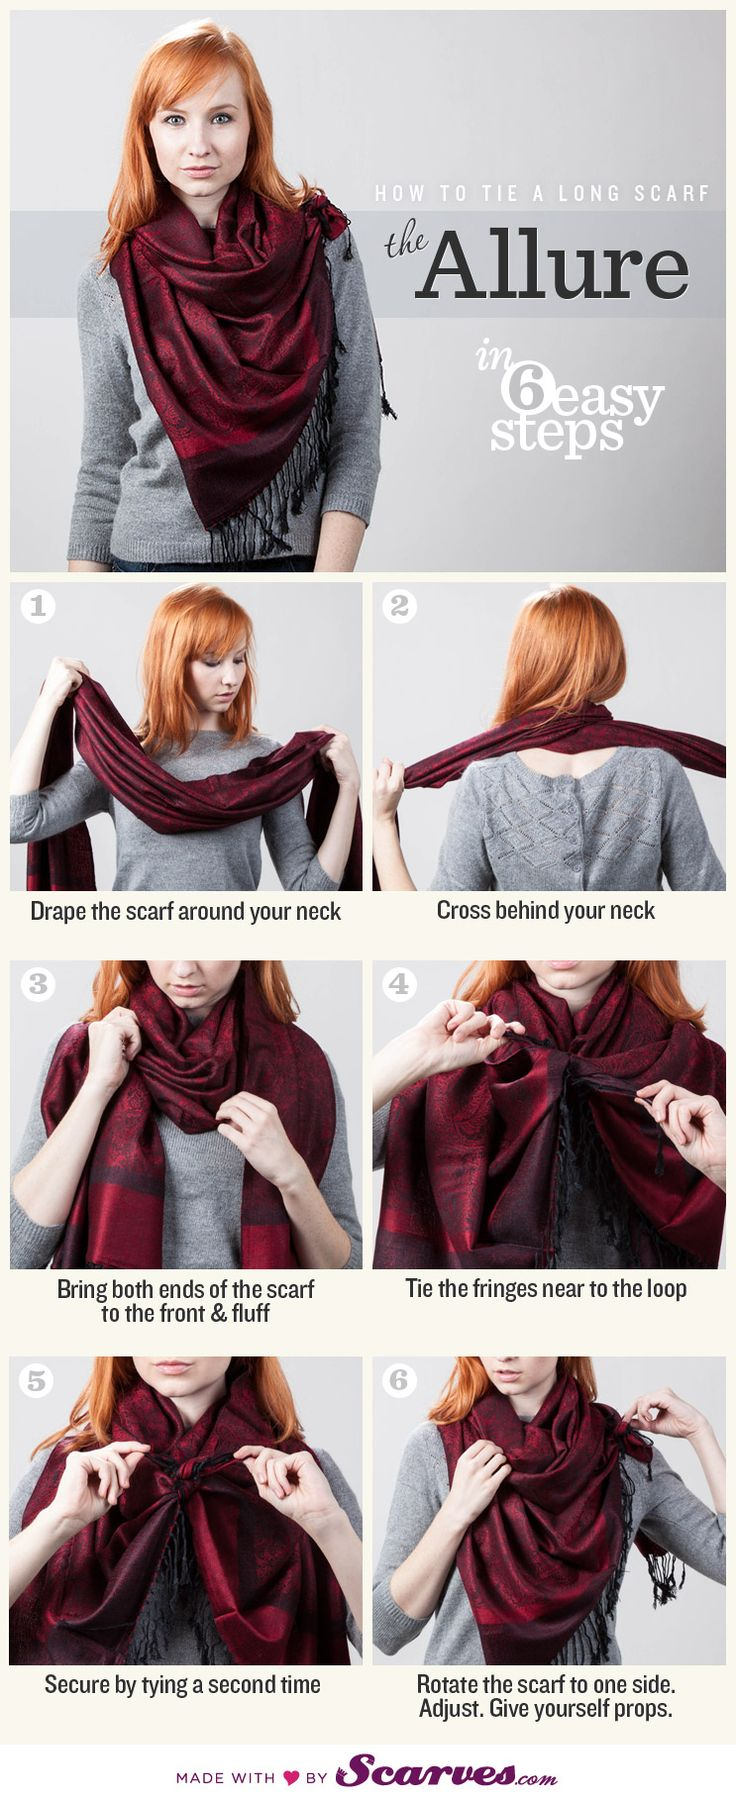 How To Tie a Long Scarf - link to different ways, some new ones for me. Great pics with funny explanations.